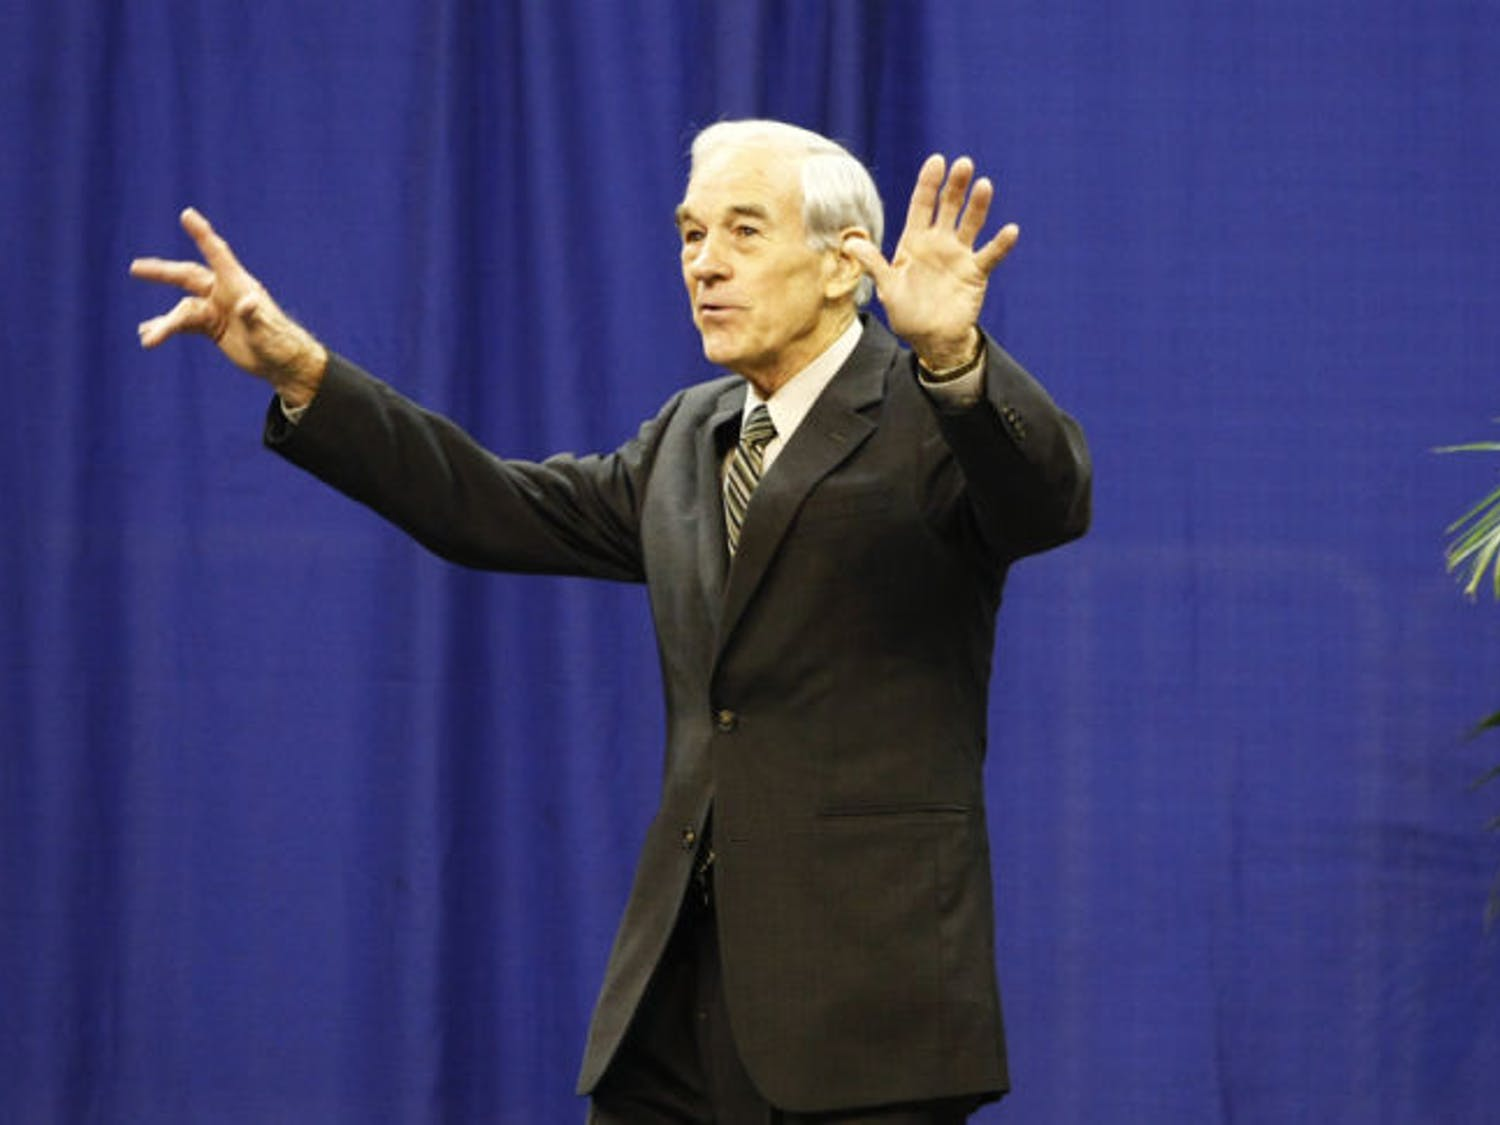 Ron Paul speaks to students and Gainesville residents Monday at the Stephen C. O'Connell Center. He was hosted by Accent Speaker's Bureau and spoke about the political economic situation.